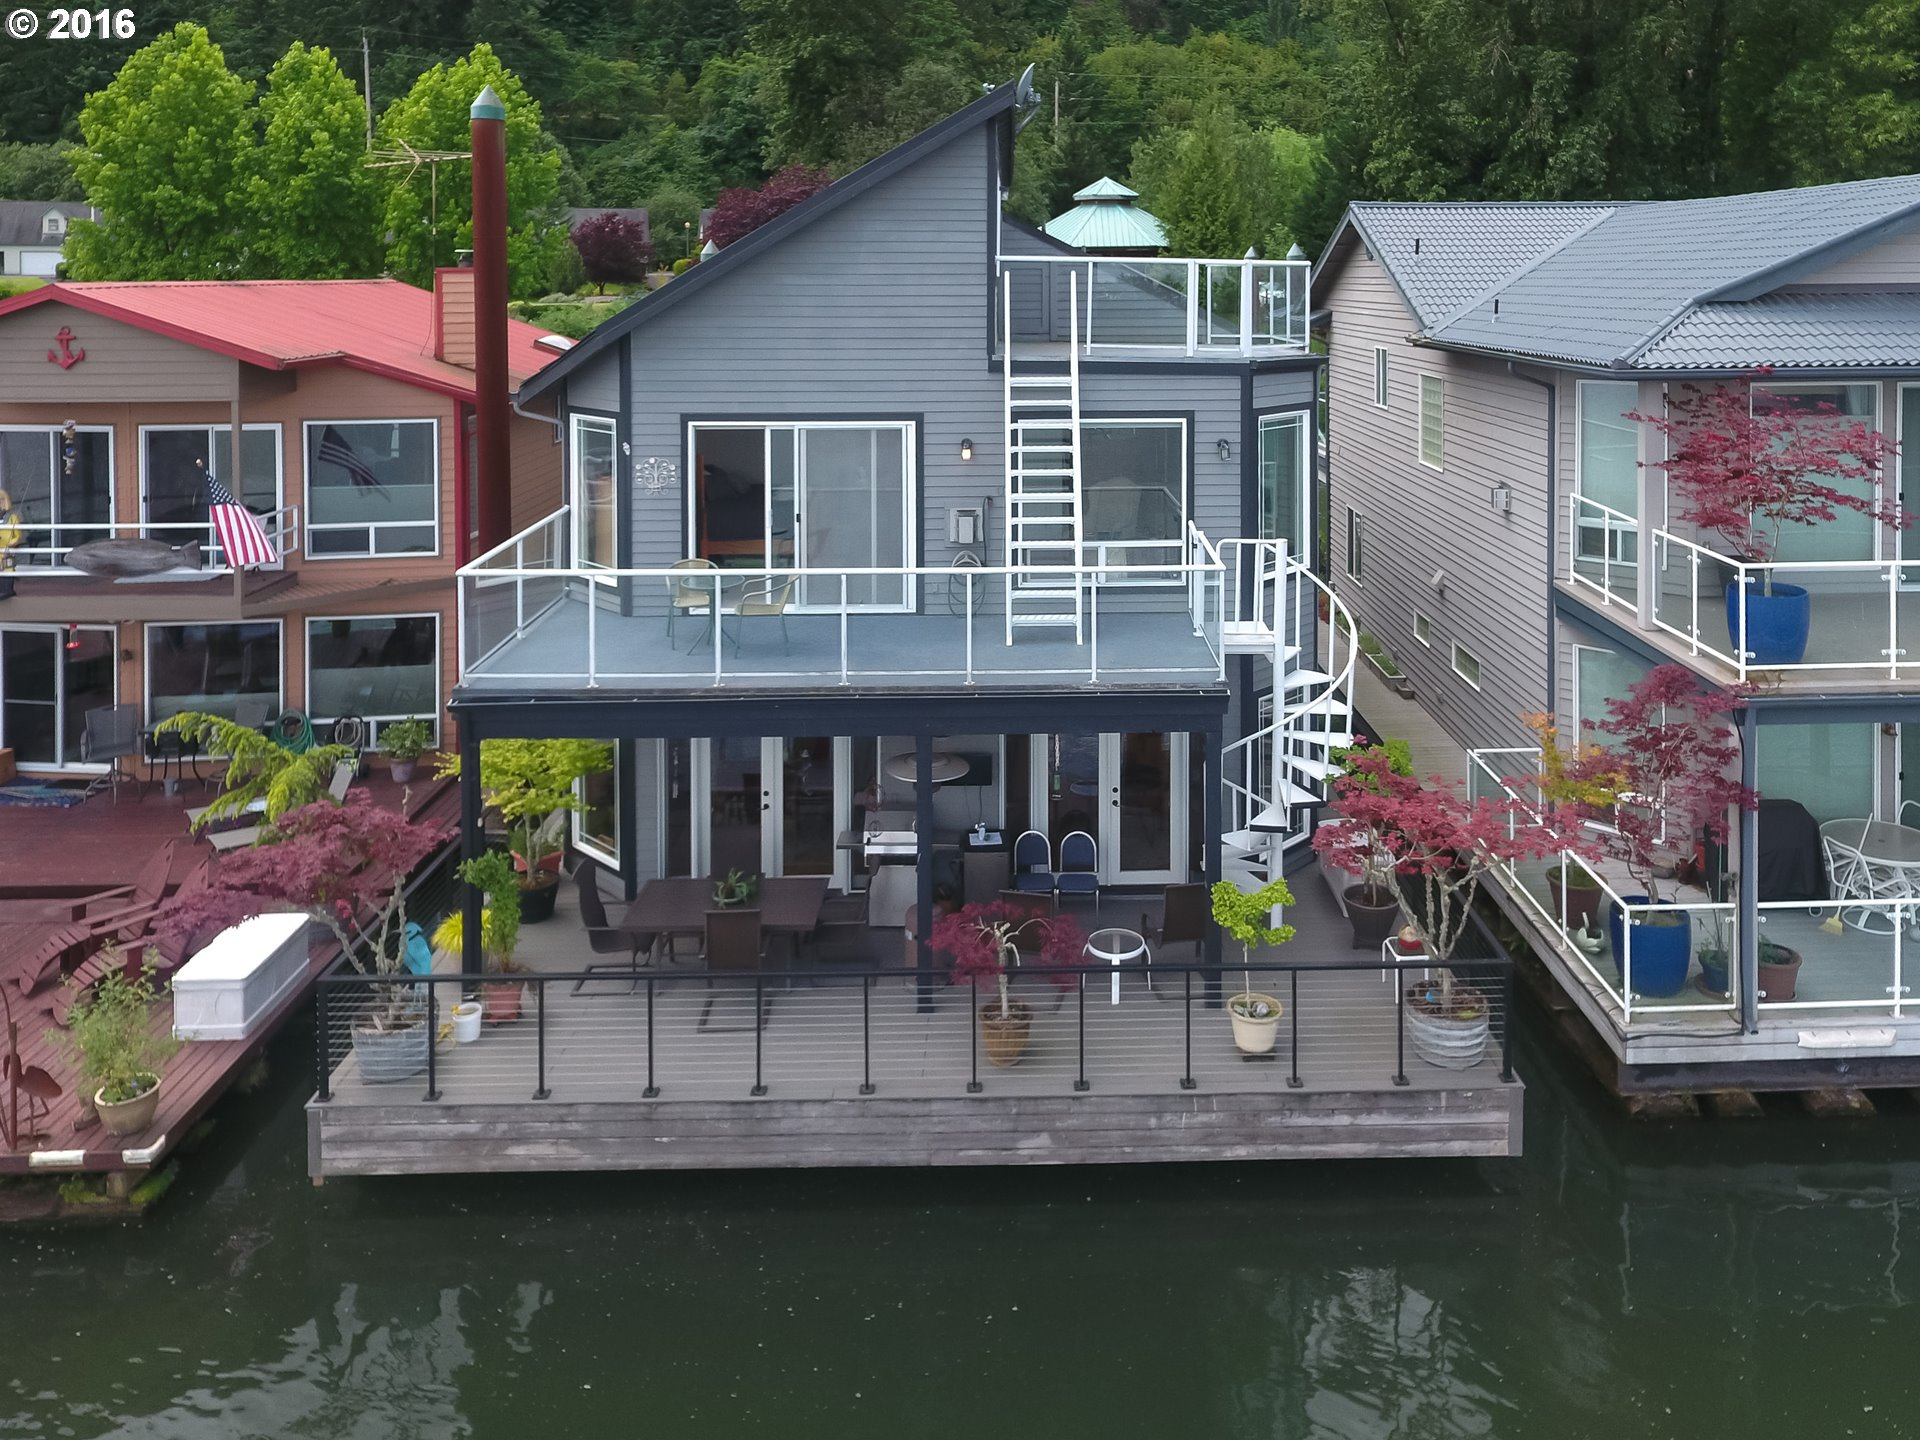 Floating homes house boats jane betts stover realtor for Floating homes portland